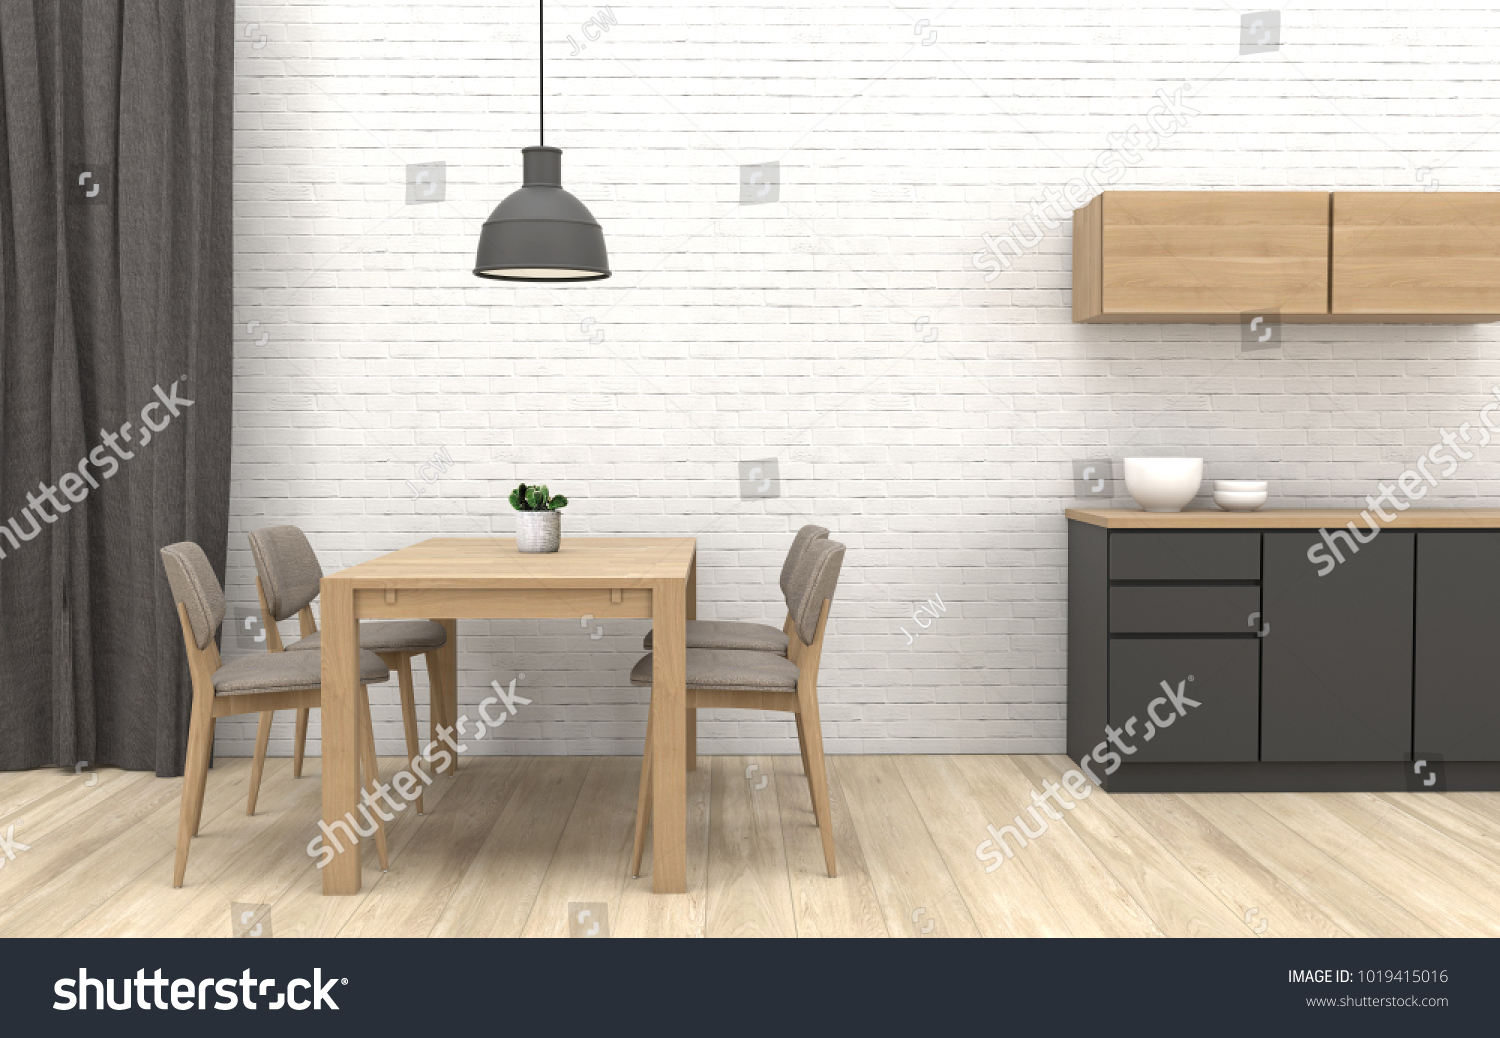 Modern Diningroom Interior Design Cactus Pot Stock Illustration ...